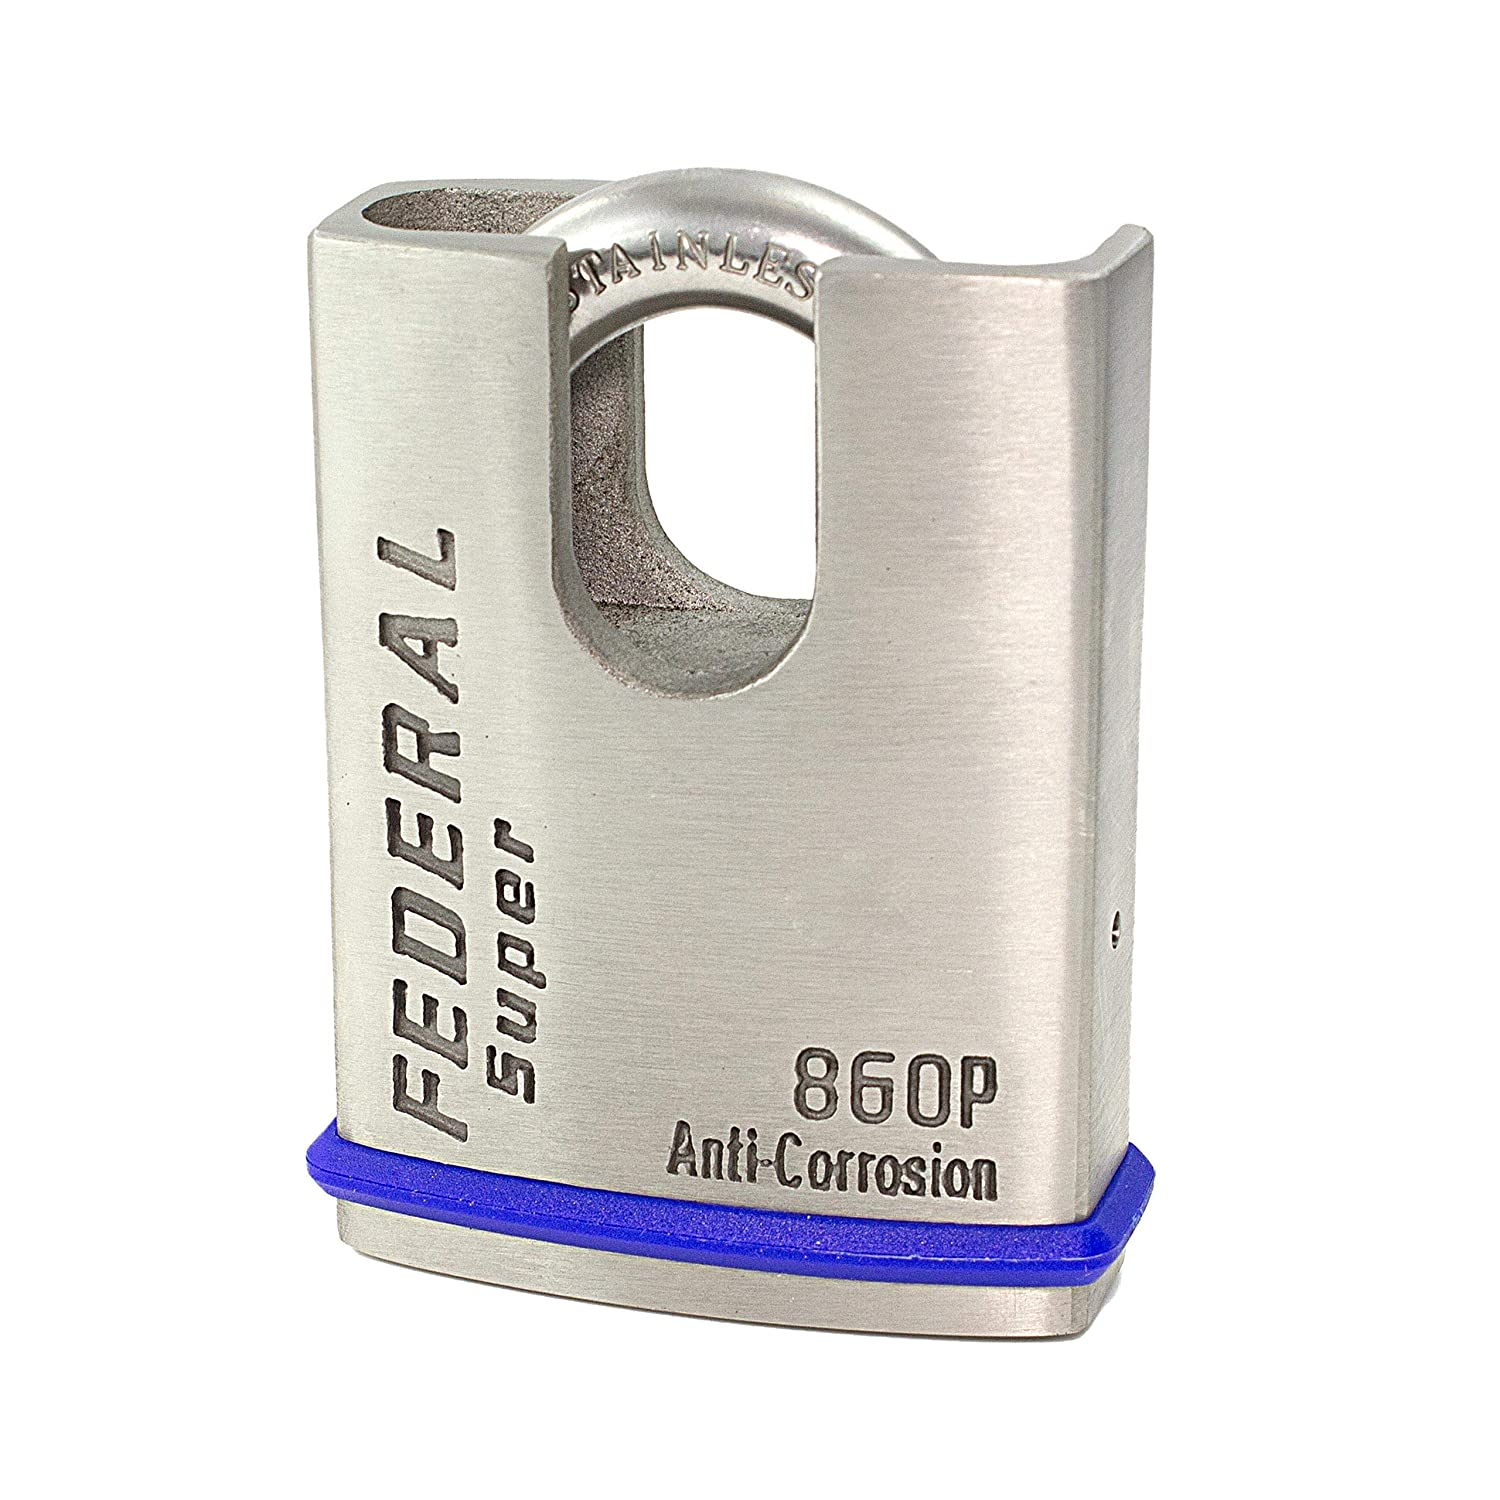 Federal FD860P - 60mm Closed Shackle Stainless Steel Marine Padlock - 10 Year Guarantee - 11mm Shackle Thickness